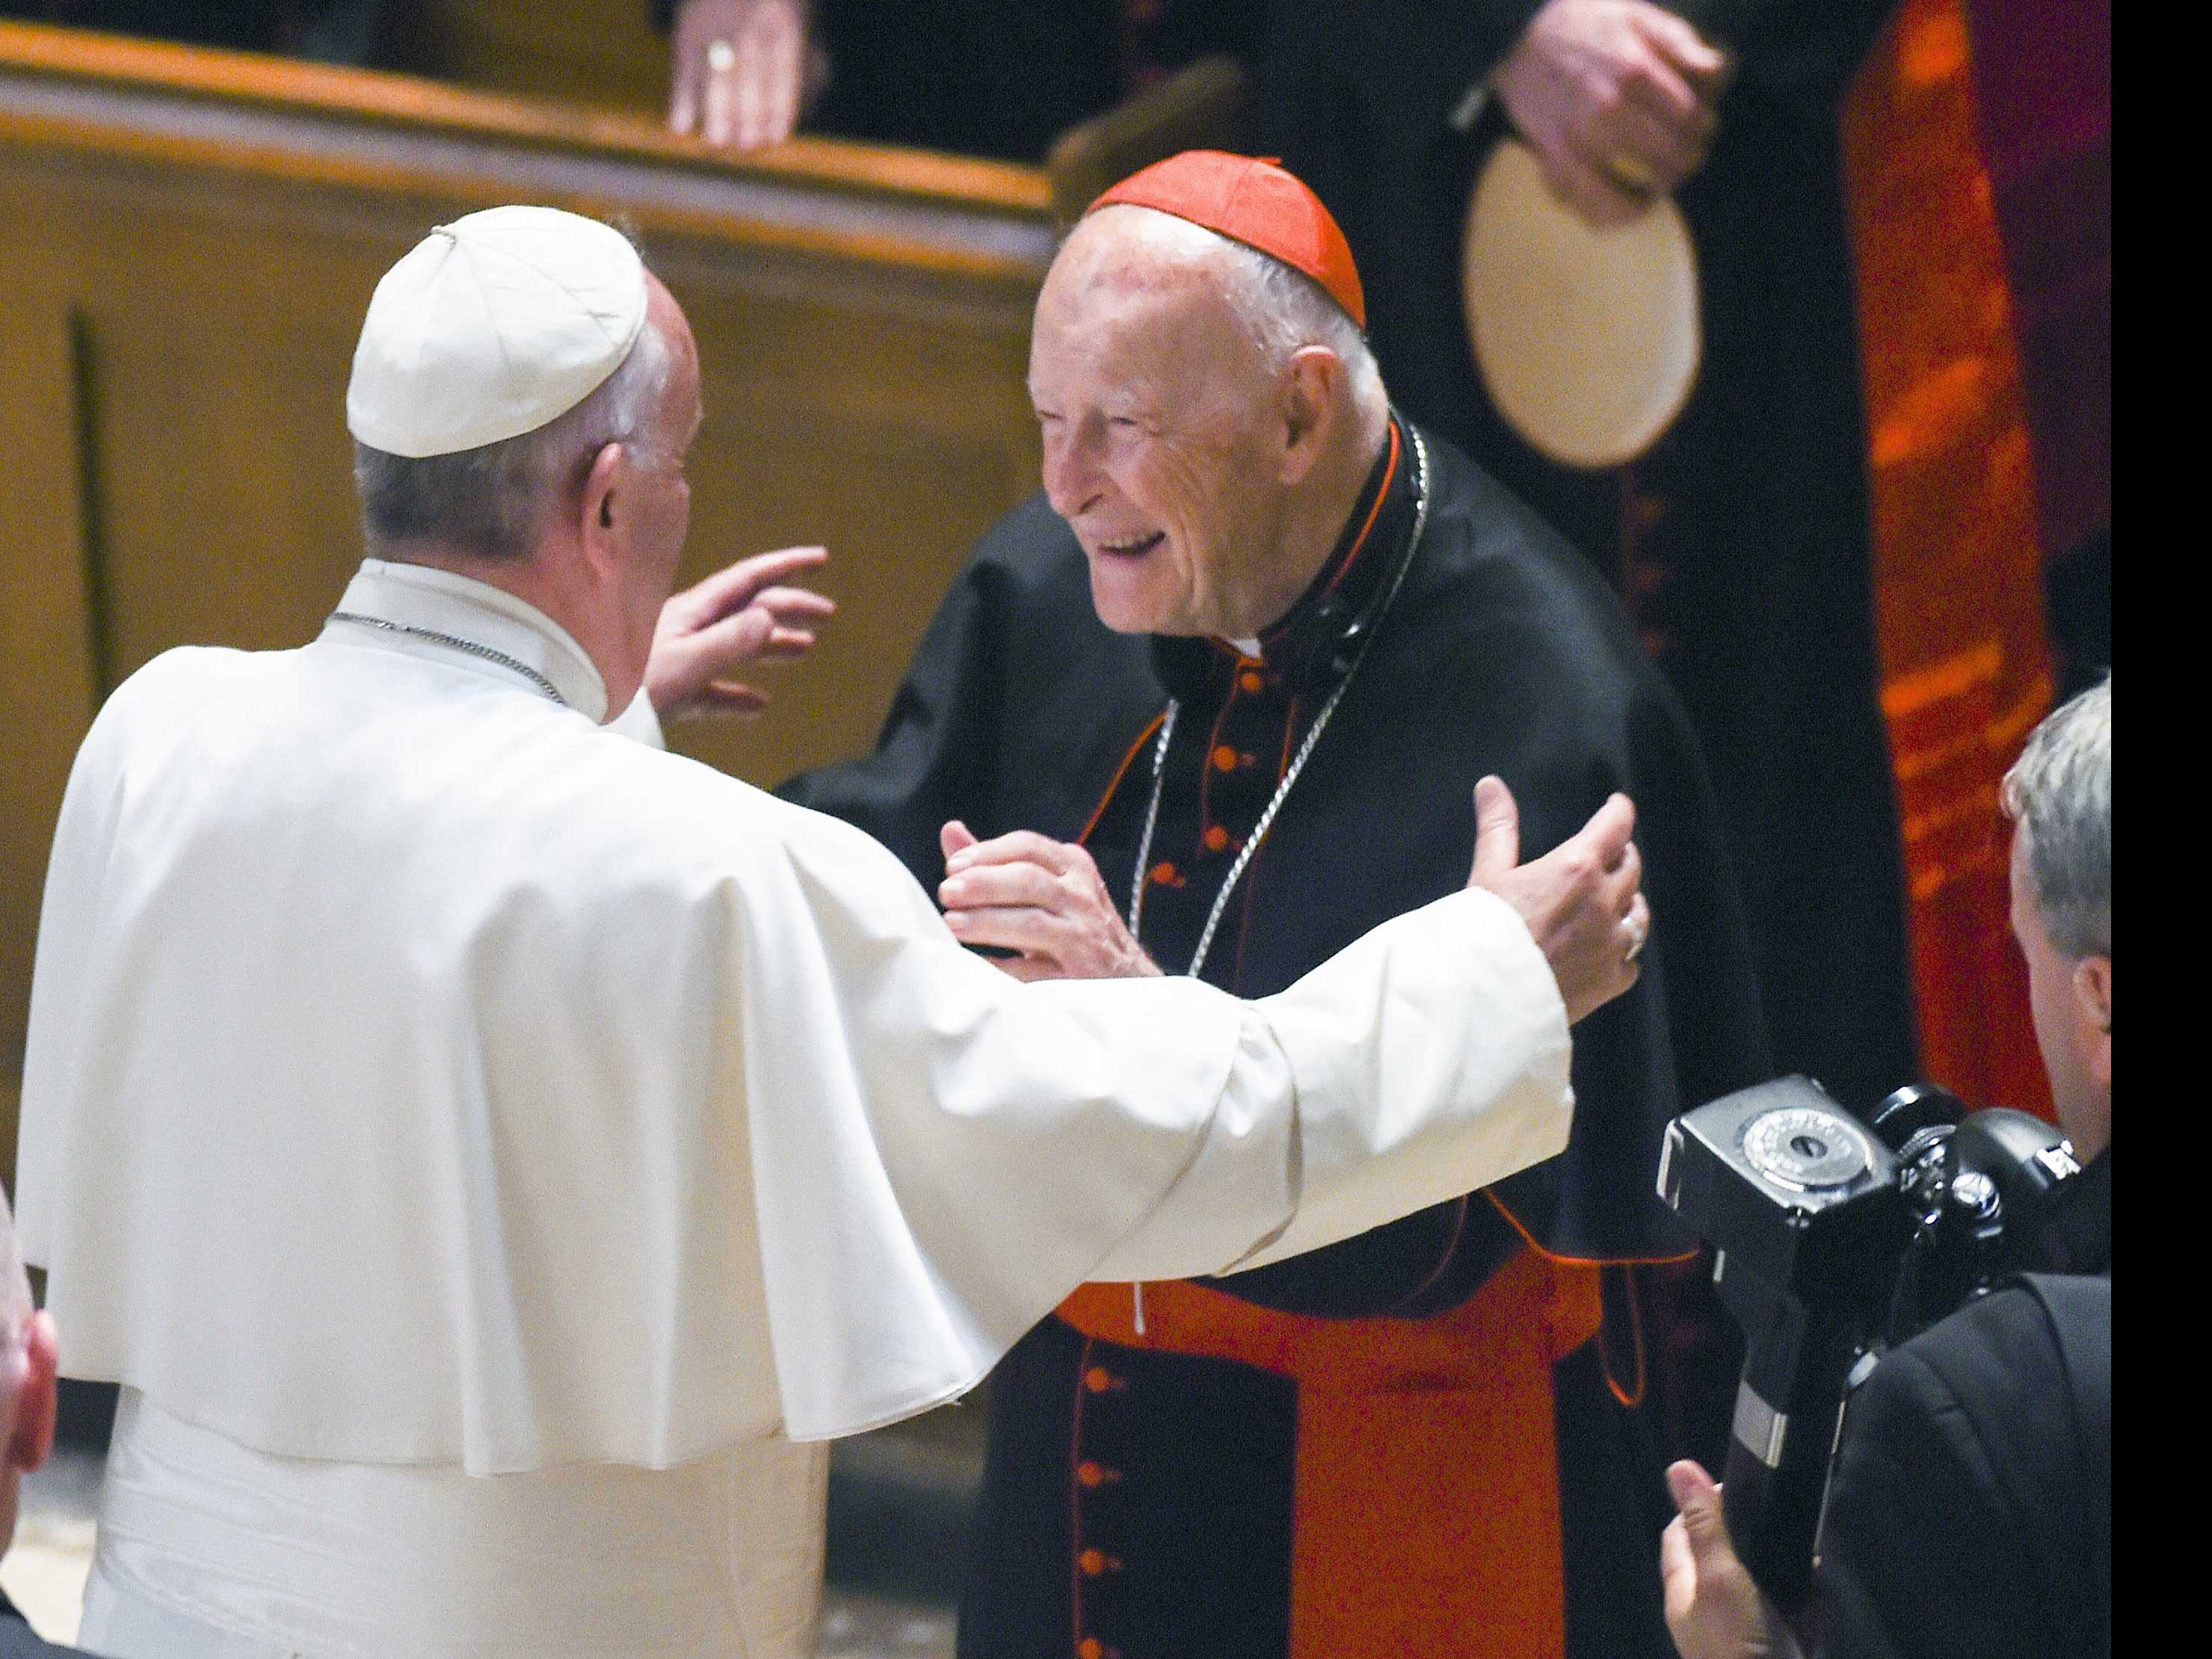 Revelations of US Cardinal Sex Abuse Force Pope's Hand